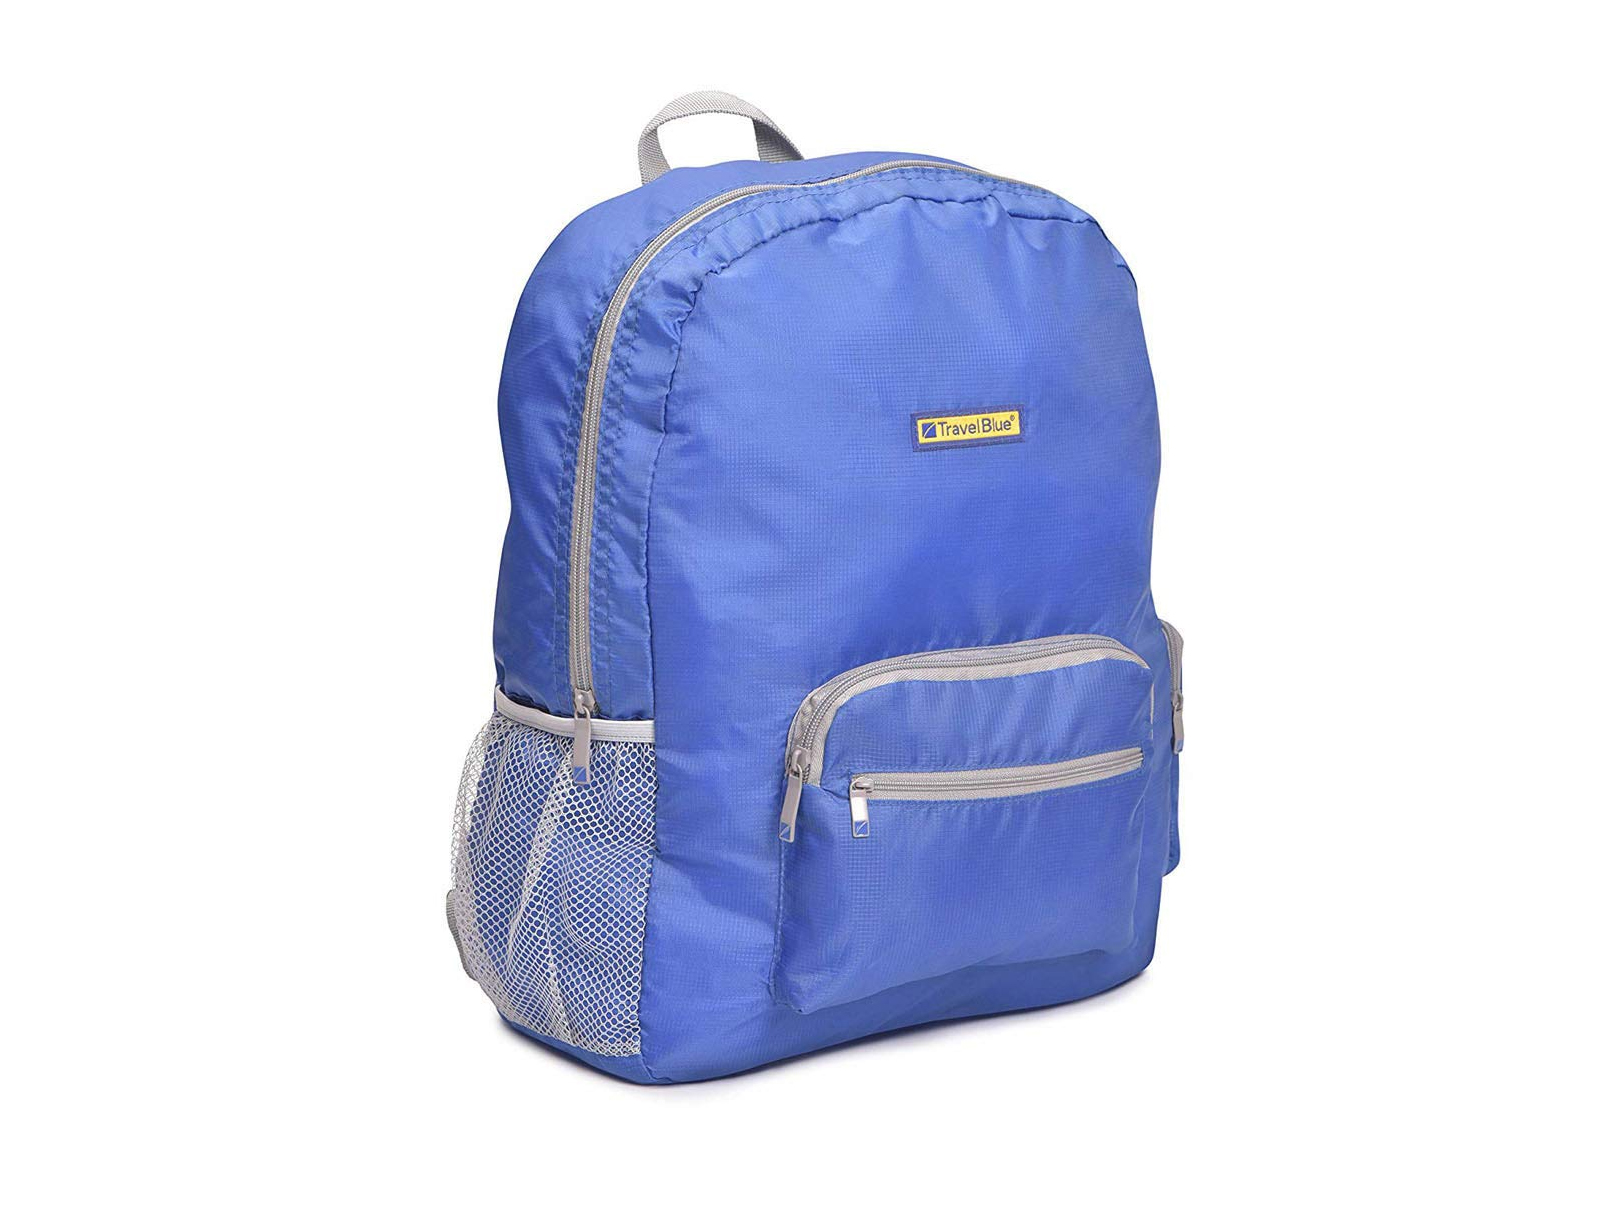 BACKPACK PLEGABLE GRANDE TRAVEL BLUE IMPERMEABLE AZUL YBK65A